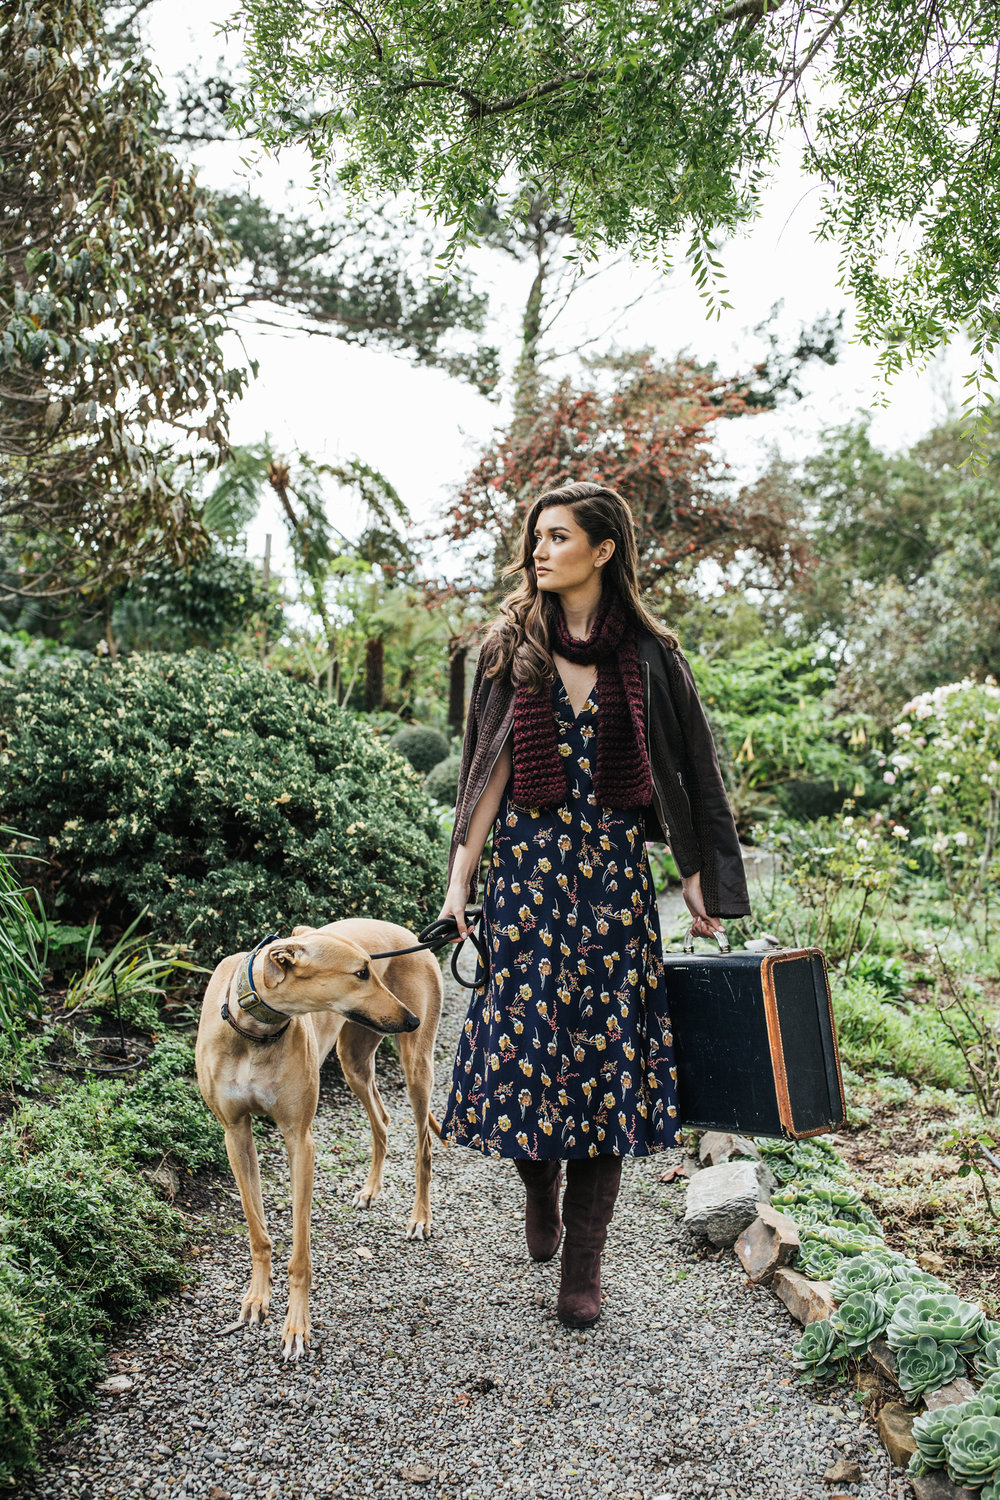 hillary jeanne photography - teryn grey, greyhound dogs, fashion blogger, travel blogger